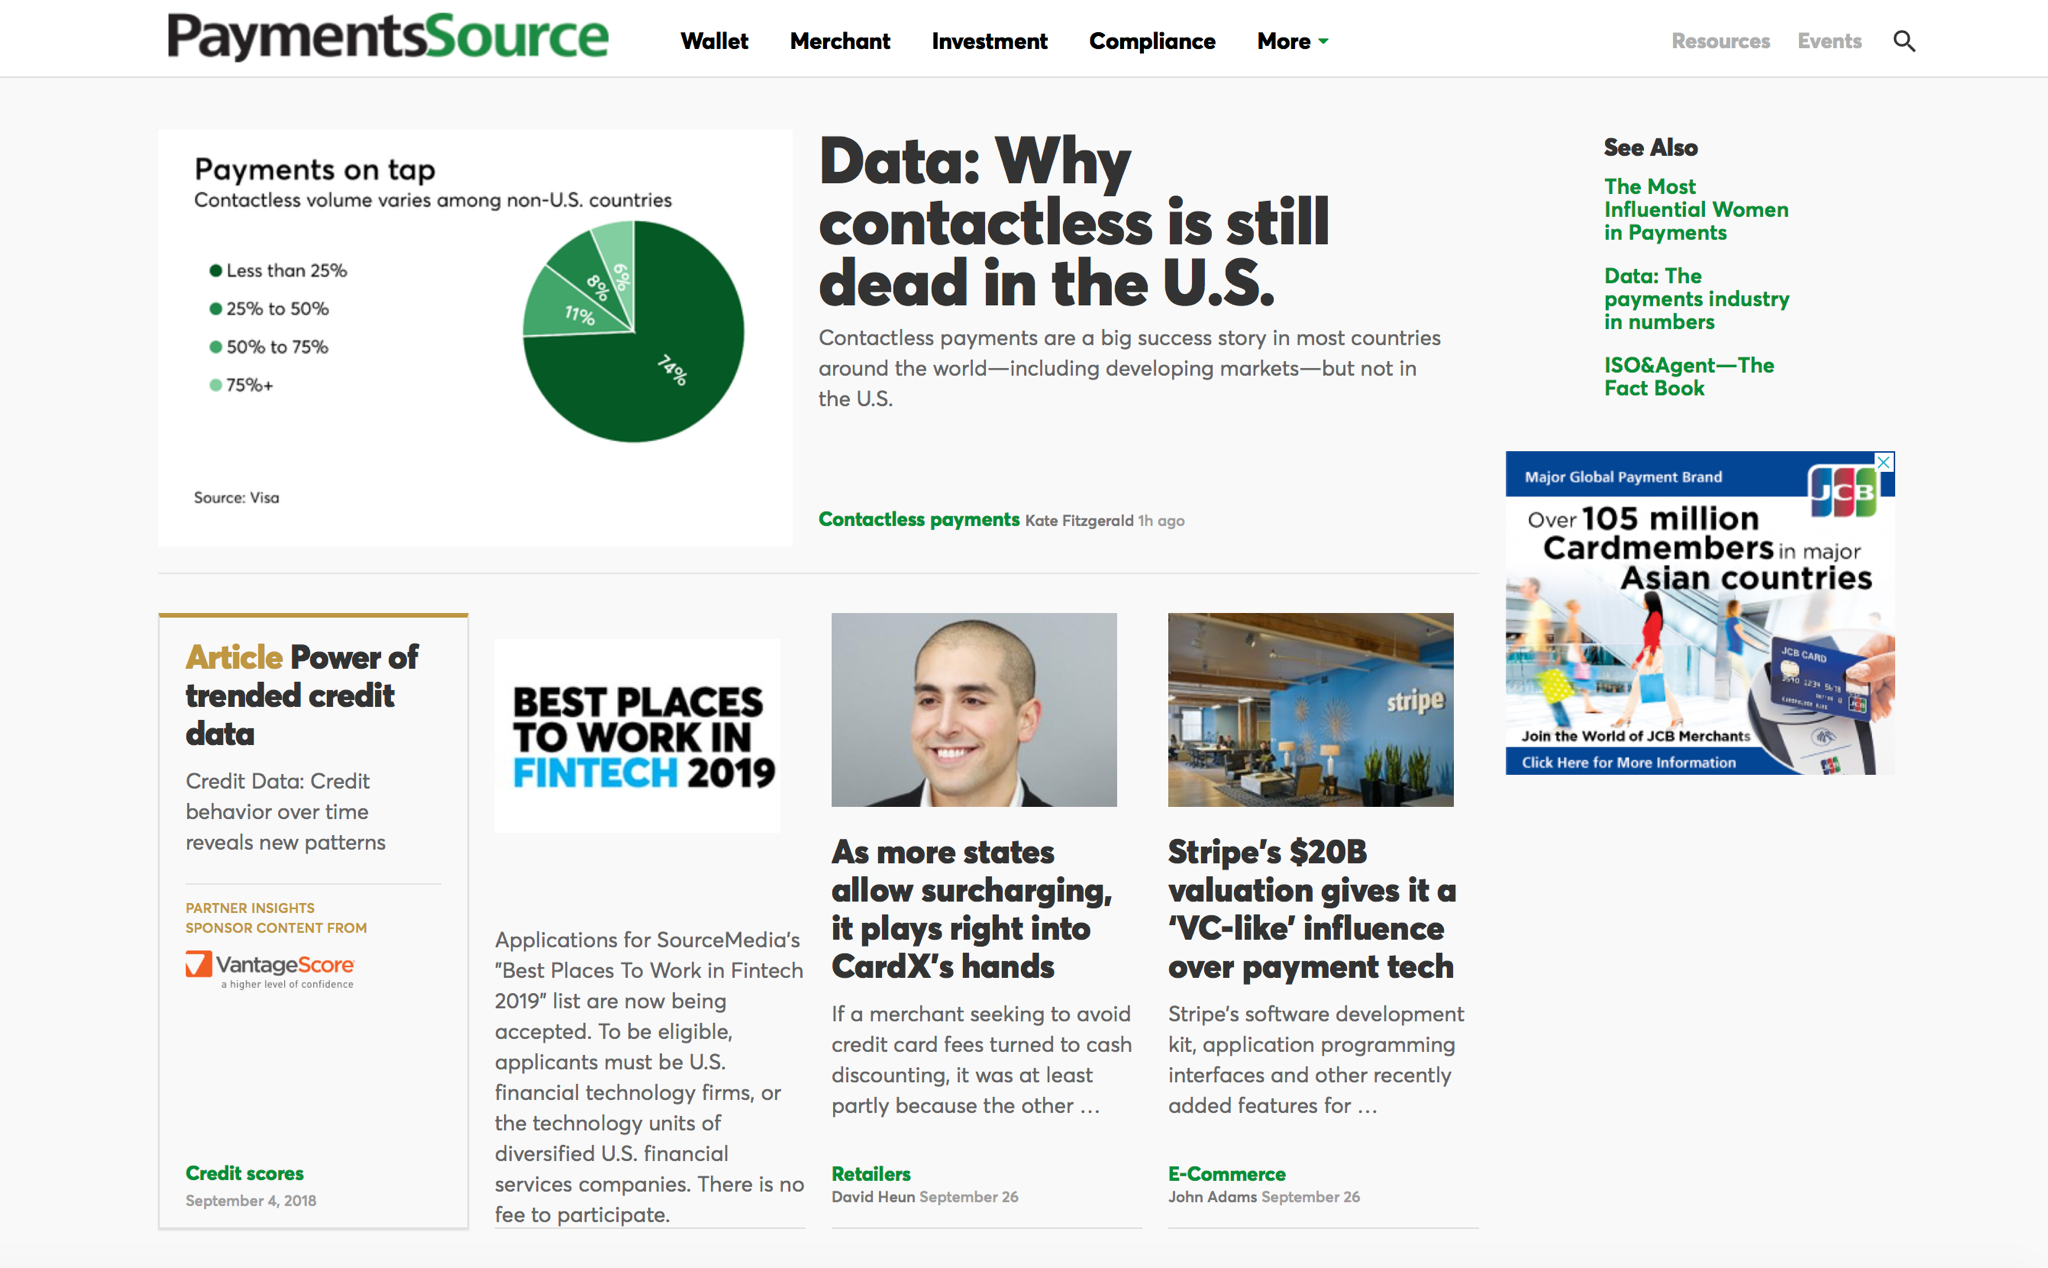 Screenshot of the front page of PaymentSource on September 27, 2018, featuring the article on CardX linked to below.